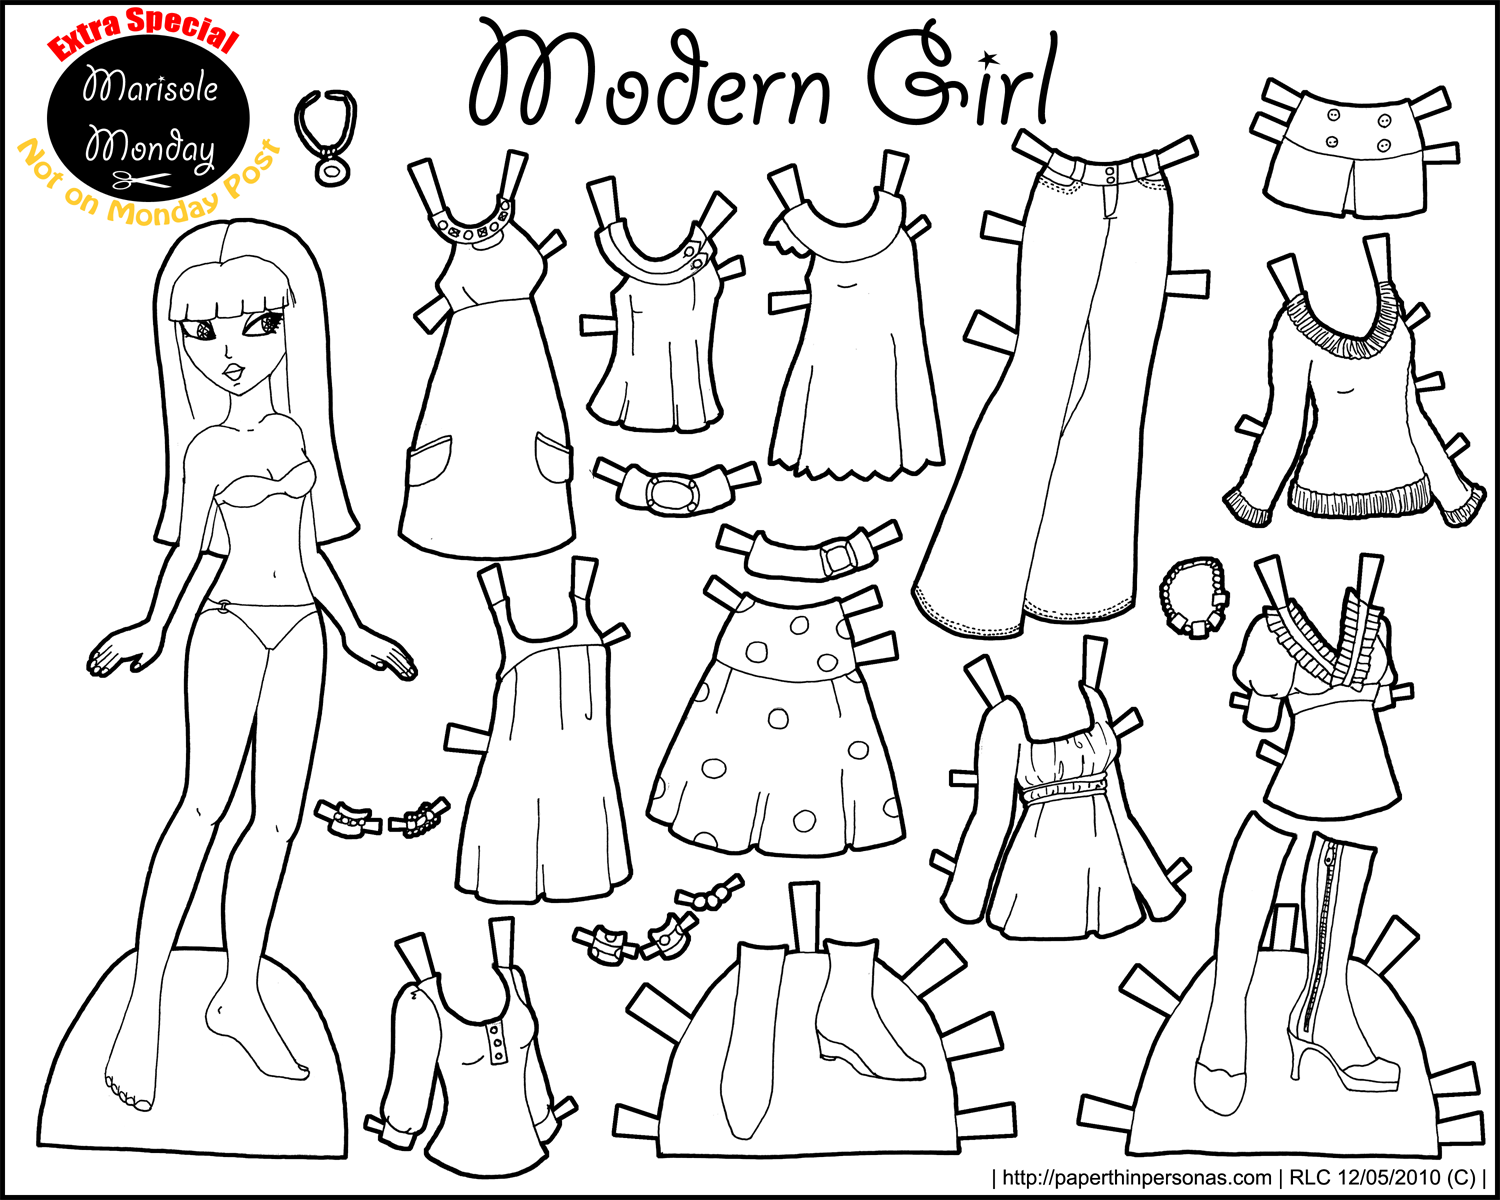 image regarding Printable Paper Dolls Templates titled Marisole Monday: Revolutionary Lady In just Black White Coloring